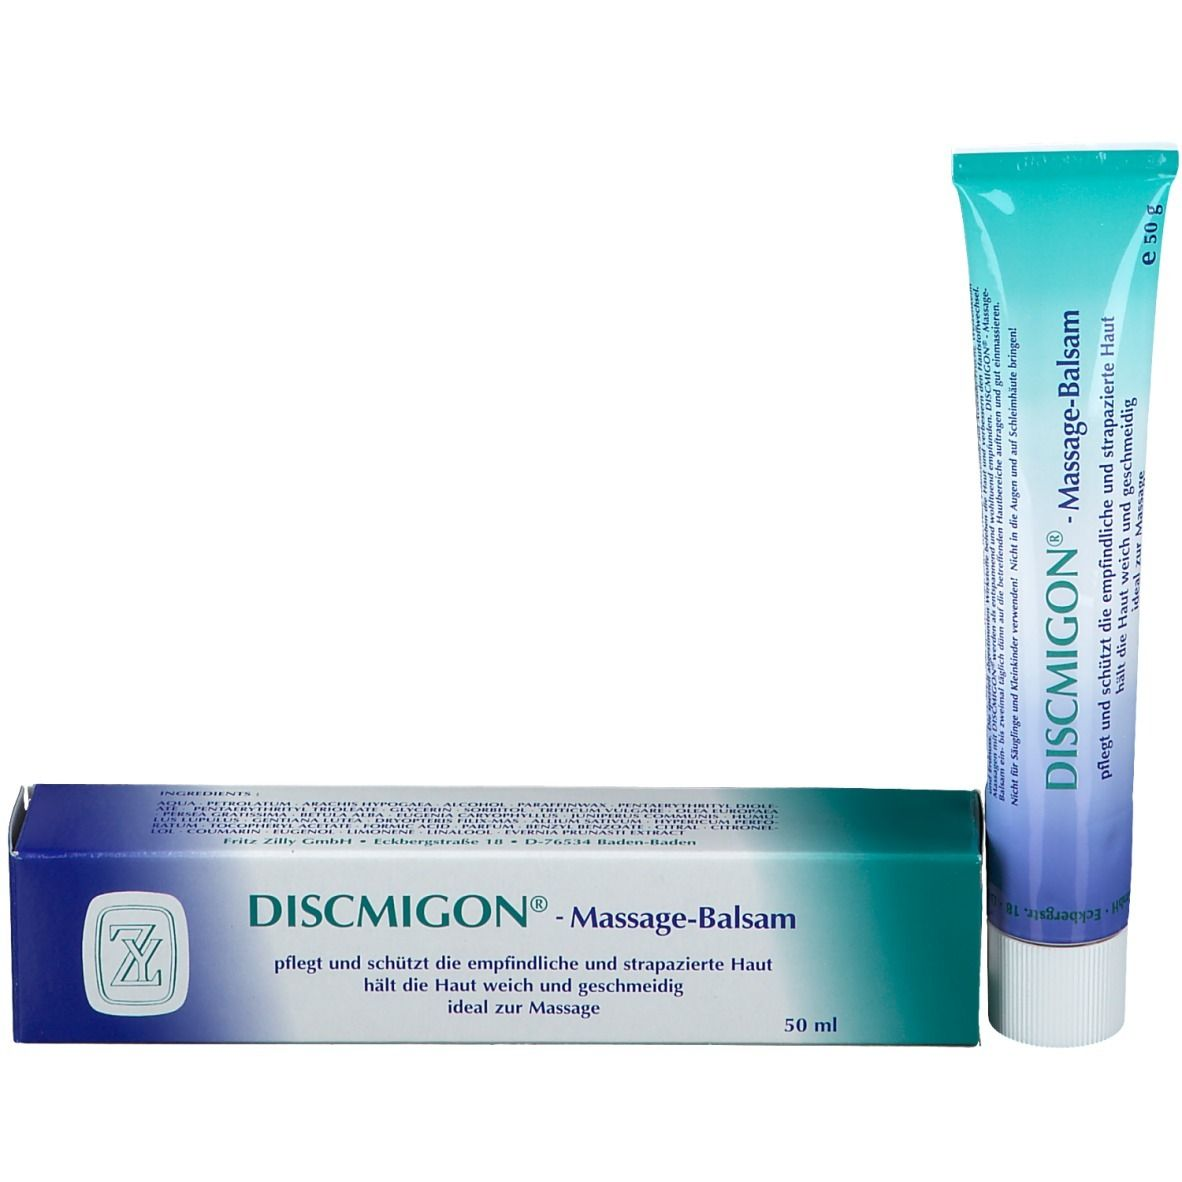 Discmigon® Massage Balsam